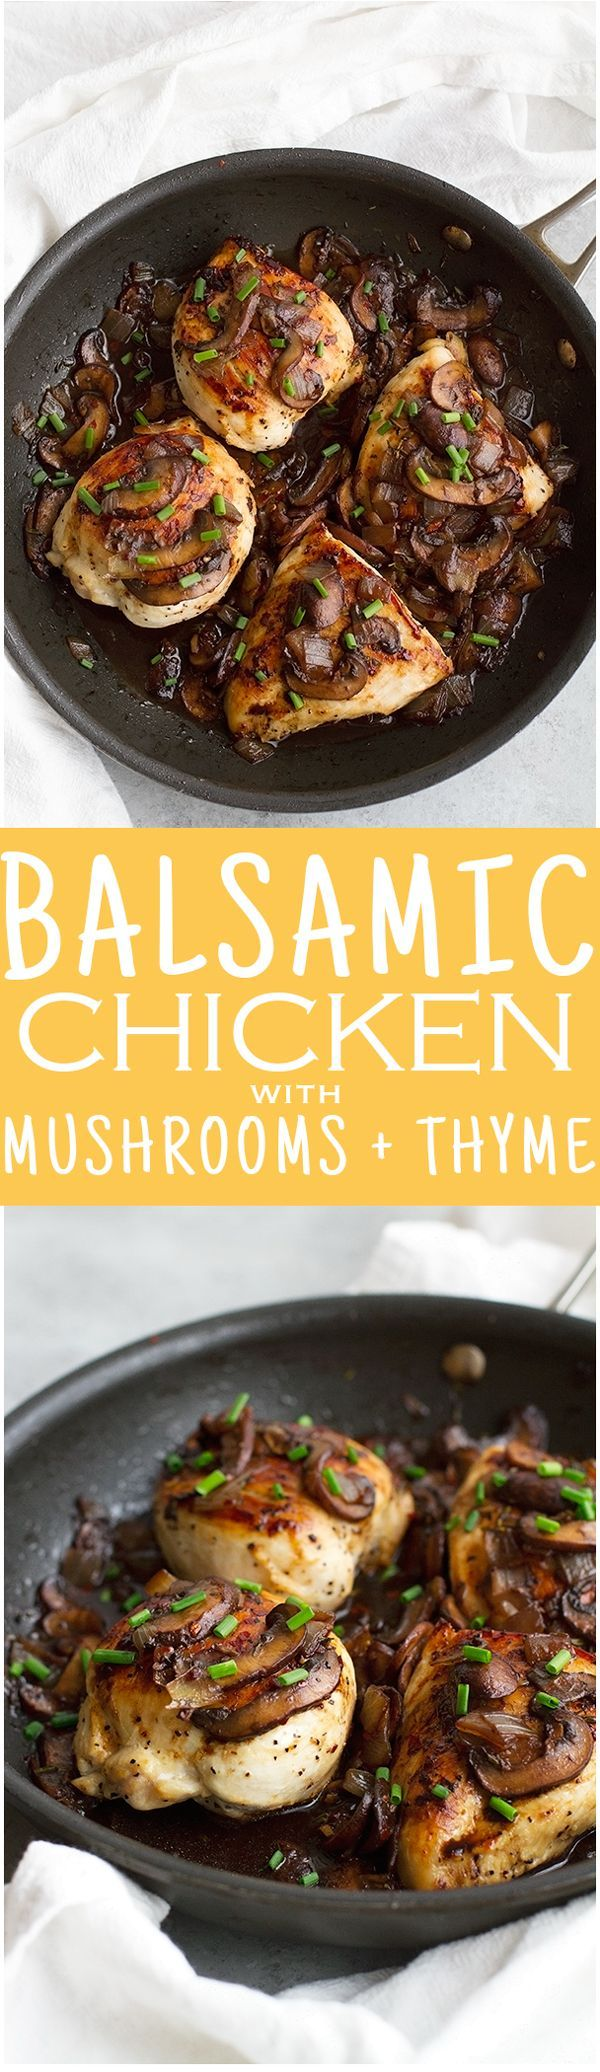 Balsamic Chicken with Mushrooms and Thyme - 30 minutes and super easy to pull together. Perfect for weeknights! #chickendinner #balsamicchicken #roastedchicken   Littlespicejar.com